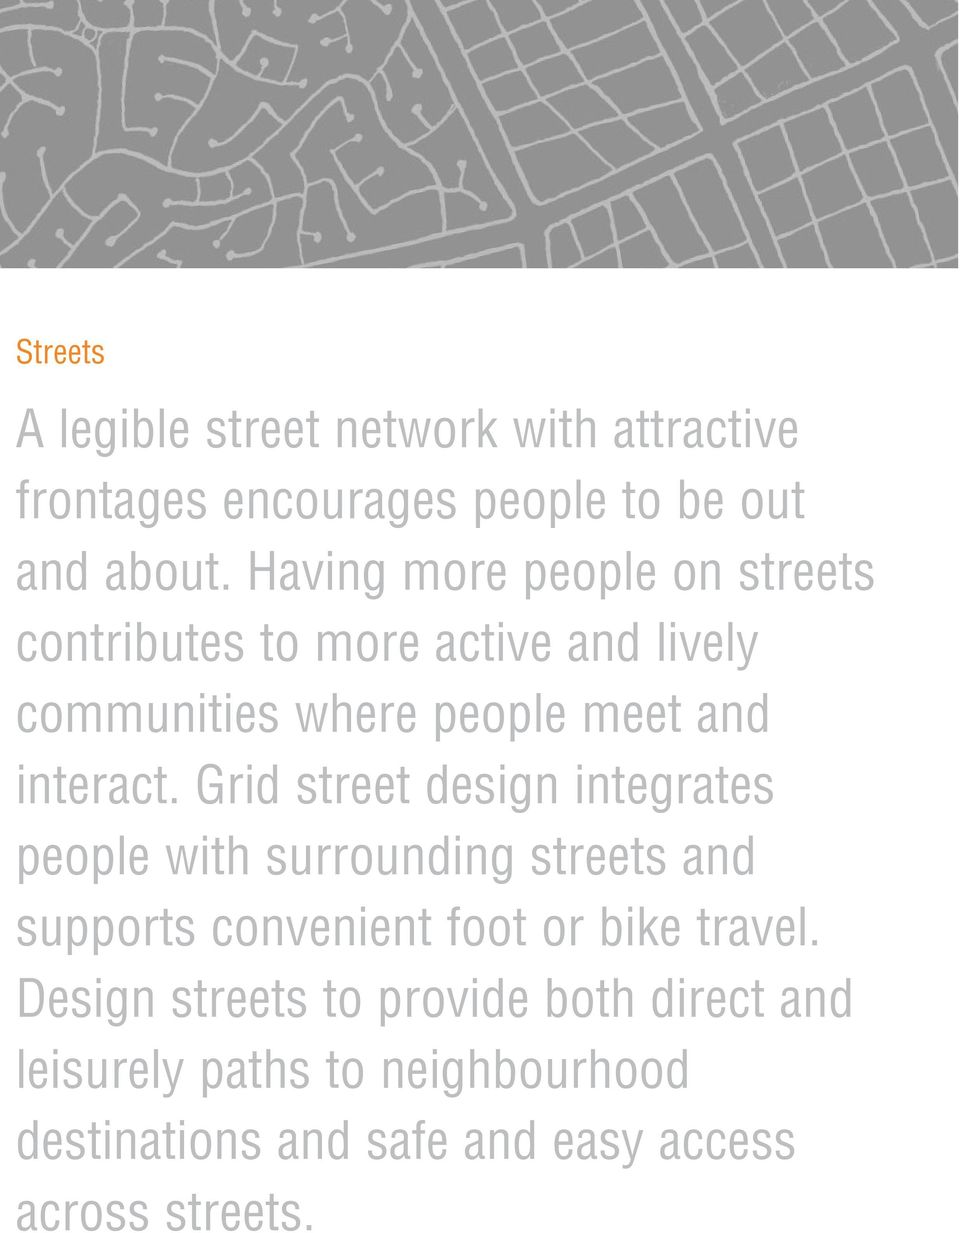 Grid street design integrates people with surrounding streets and supports convenient foot or bike travel.